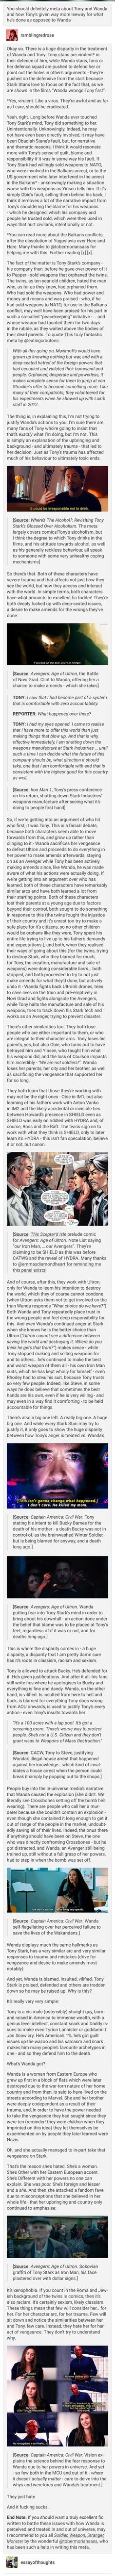 Wanda and Tony have similar origin stories, but only one is treated well by the fandom. Wonder why that is? #cacw #tonystark #wandamaximoff